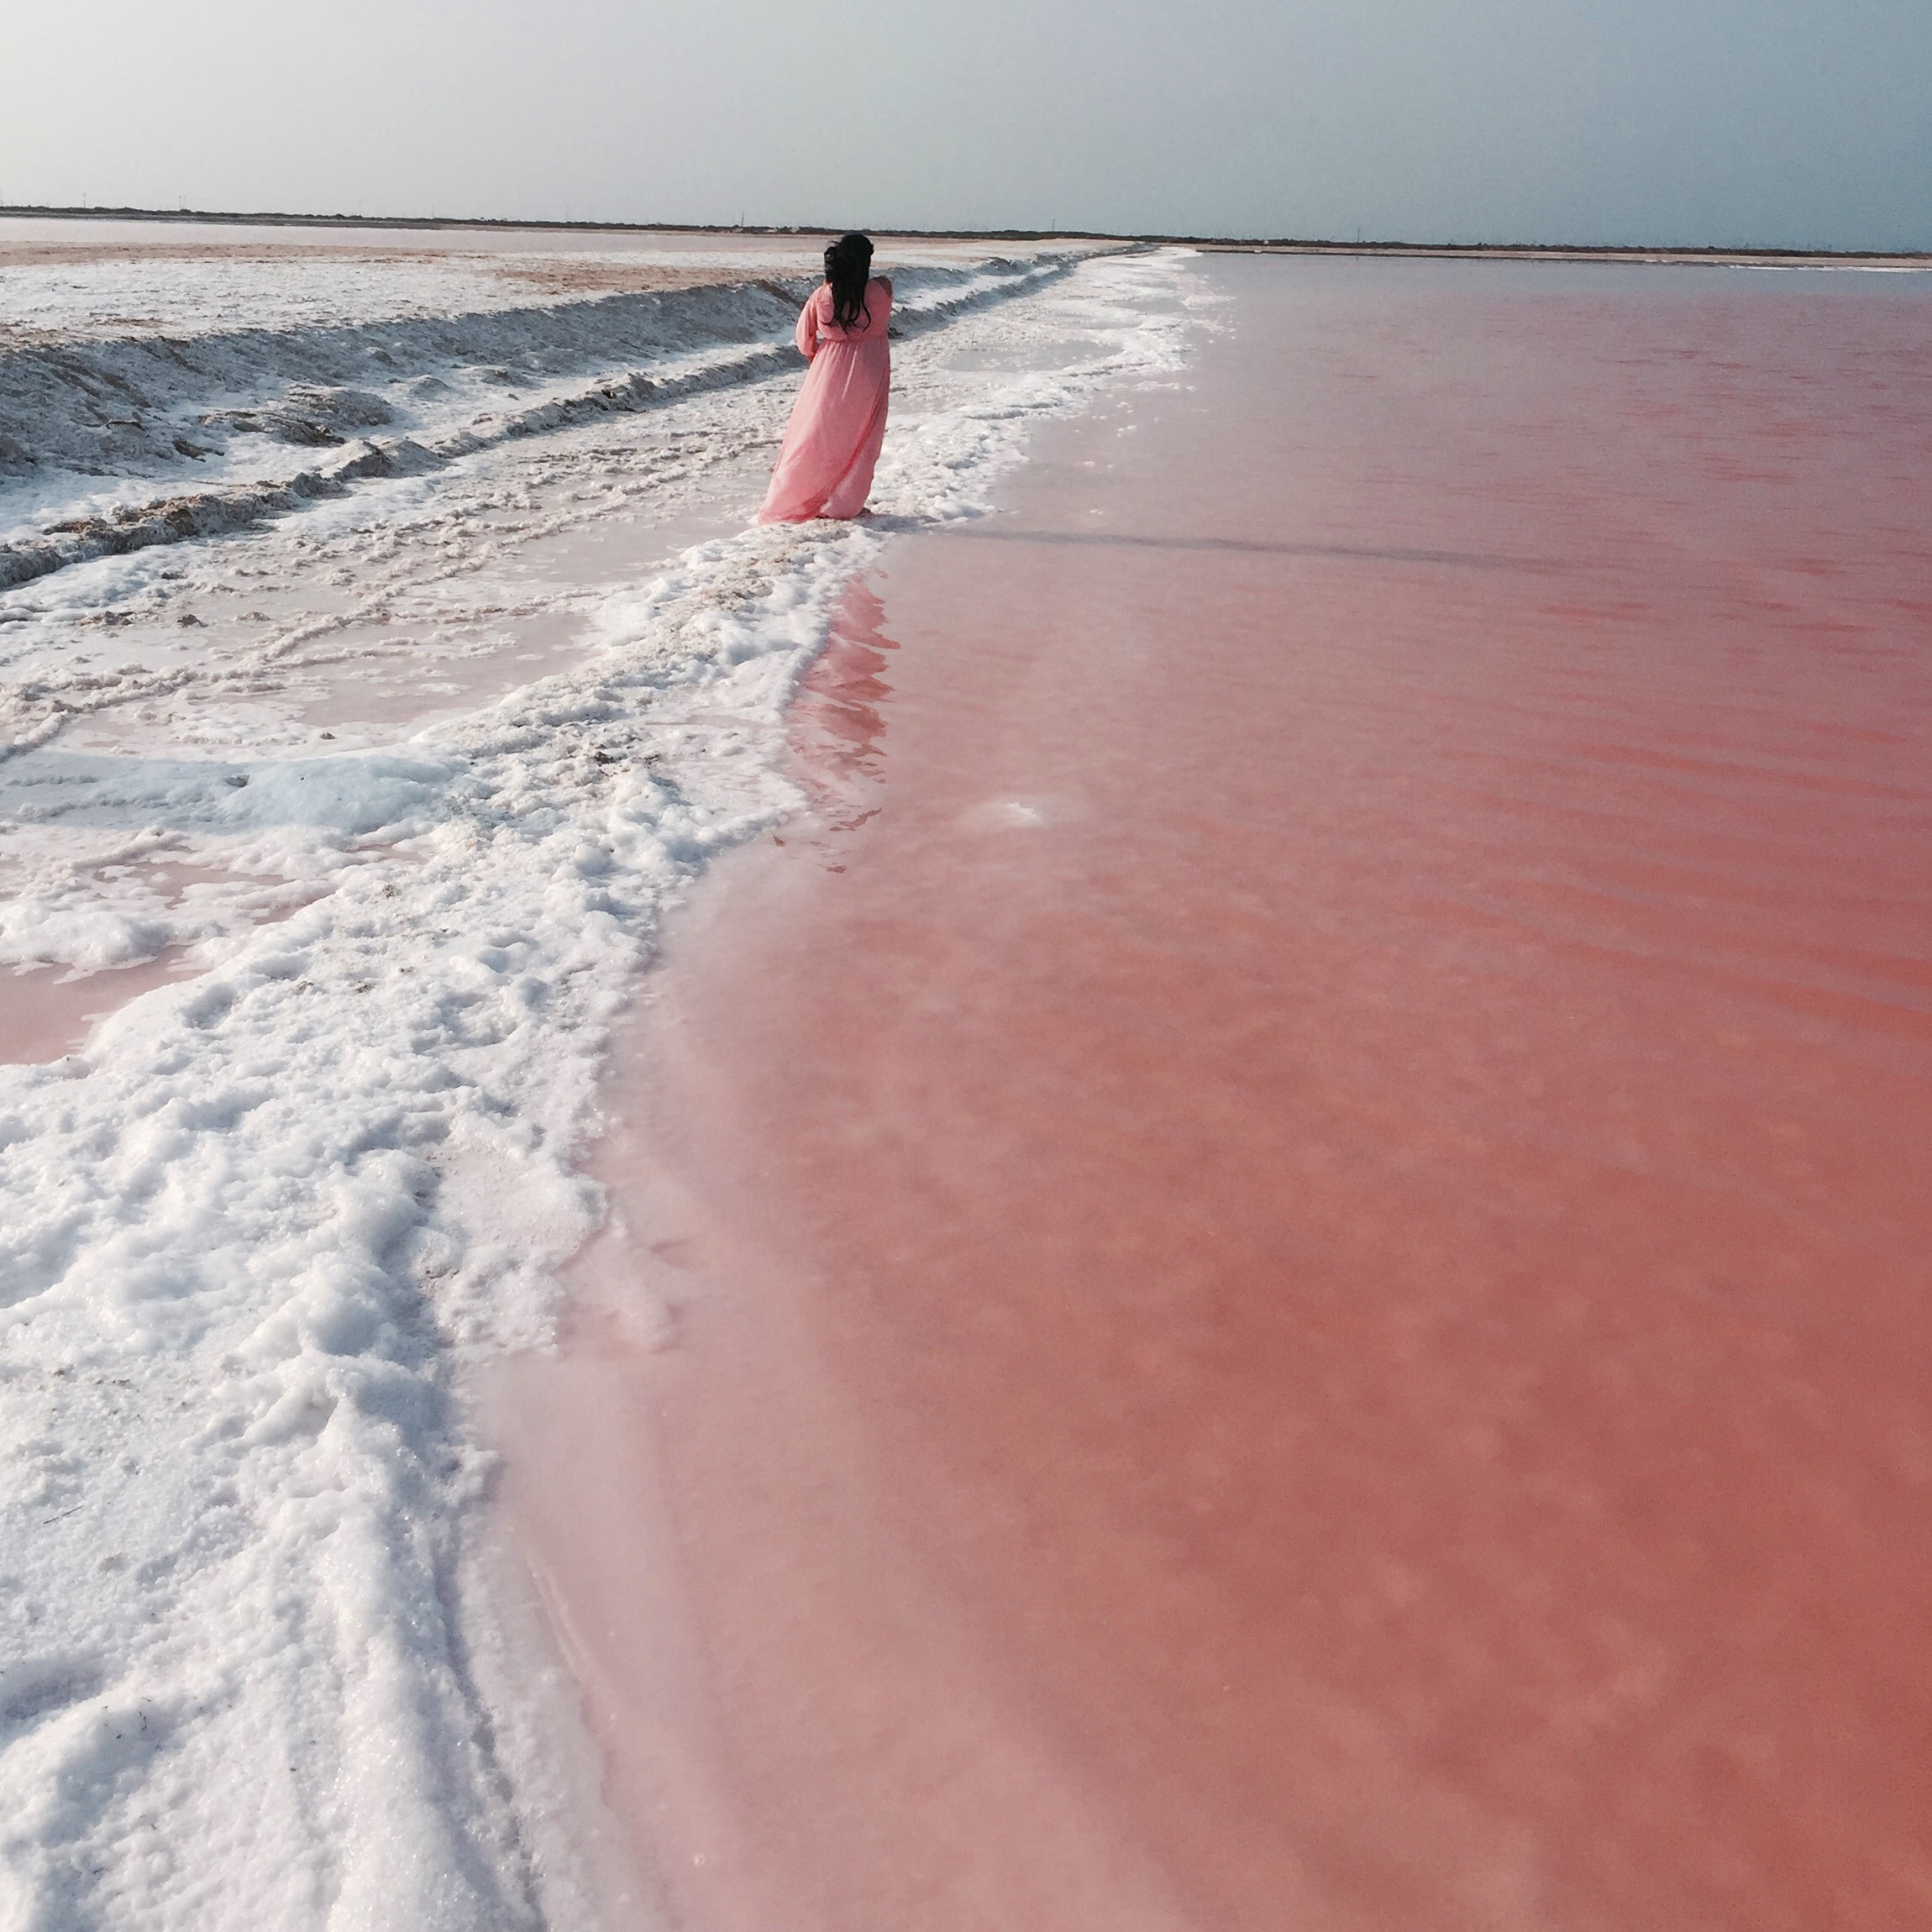 LAS COLORADAS - Cotton-candy pink lakes filled with salt. Unreal.This was my ultimate favourite thing about our trip, {besides an awesome picture my husband took within 10 minutes of getting there}this place was insanely beautiful!It is super pretty to look at, but not somewhere you want to swim in, since the vibrant glimmering pink color is due to red-colored algae, plankton, and brine shrimp that thrive in salty environment.Oh, and it had an awful odor too, but it was breathtakingly pretty and that itself was enough!